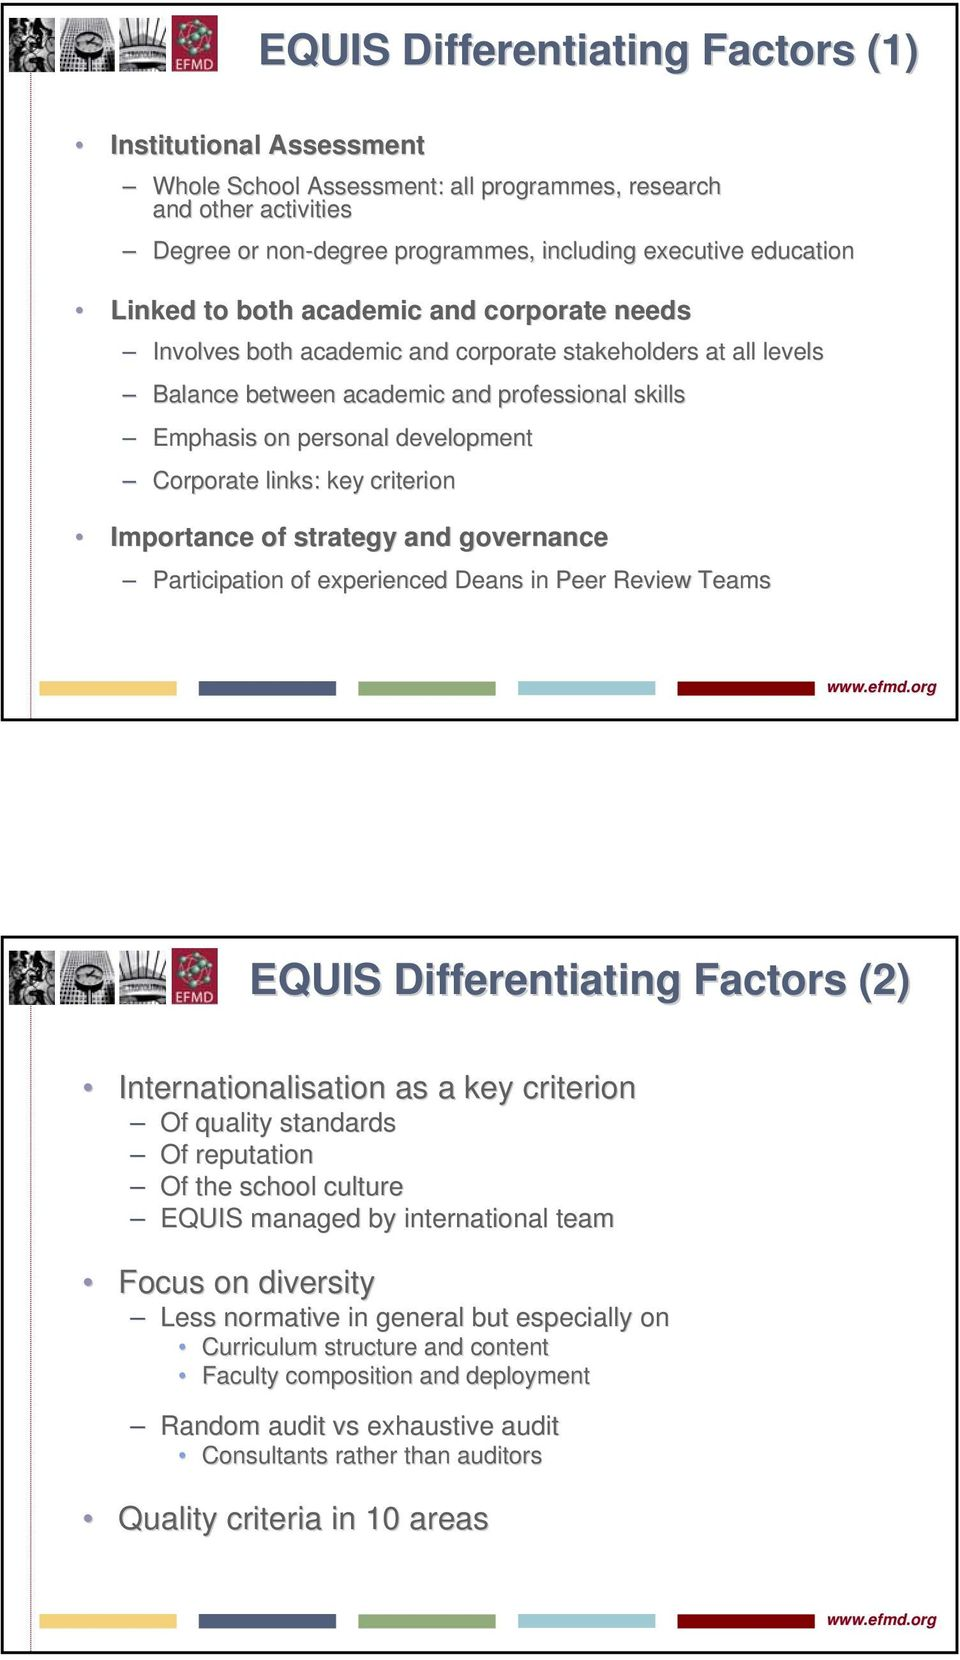 key criterion Importance of strategy and governance Participation of experienced Deans in Peer Review Teams EQUIS Differentiating Factors (2) Internationalisation as a key criterion Of quality